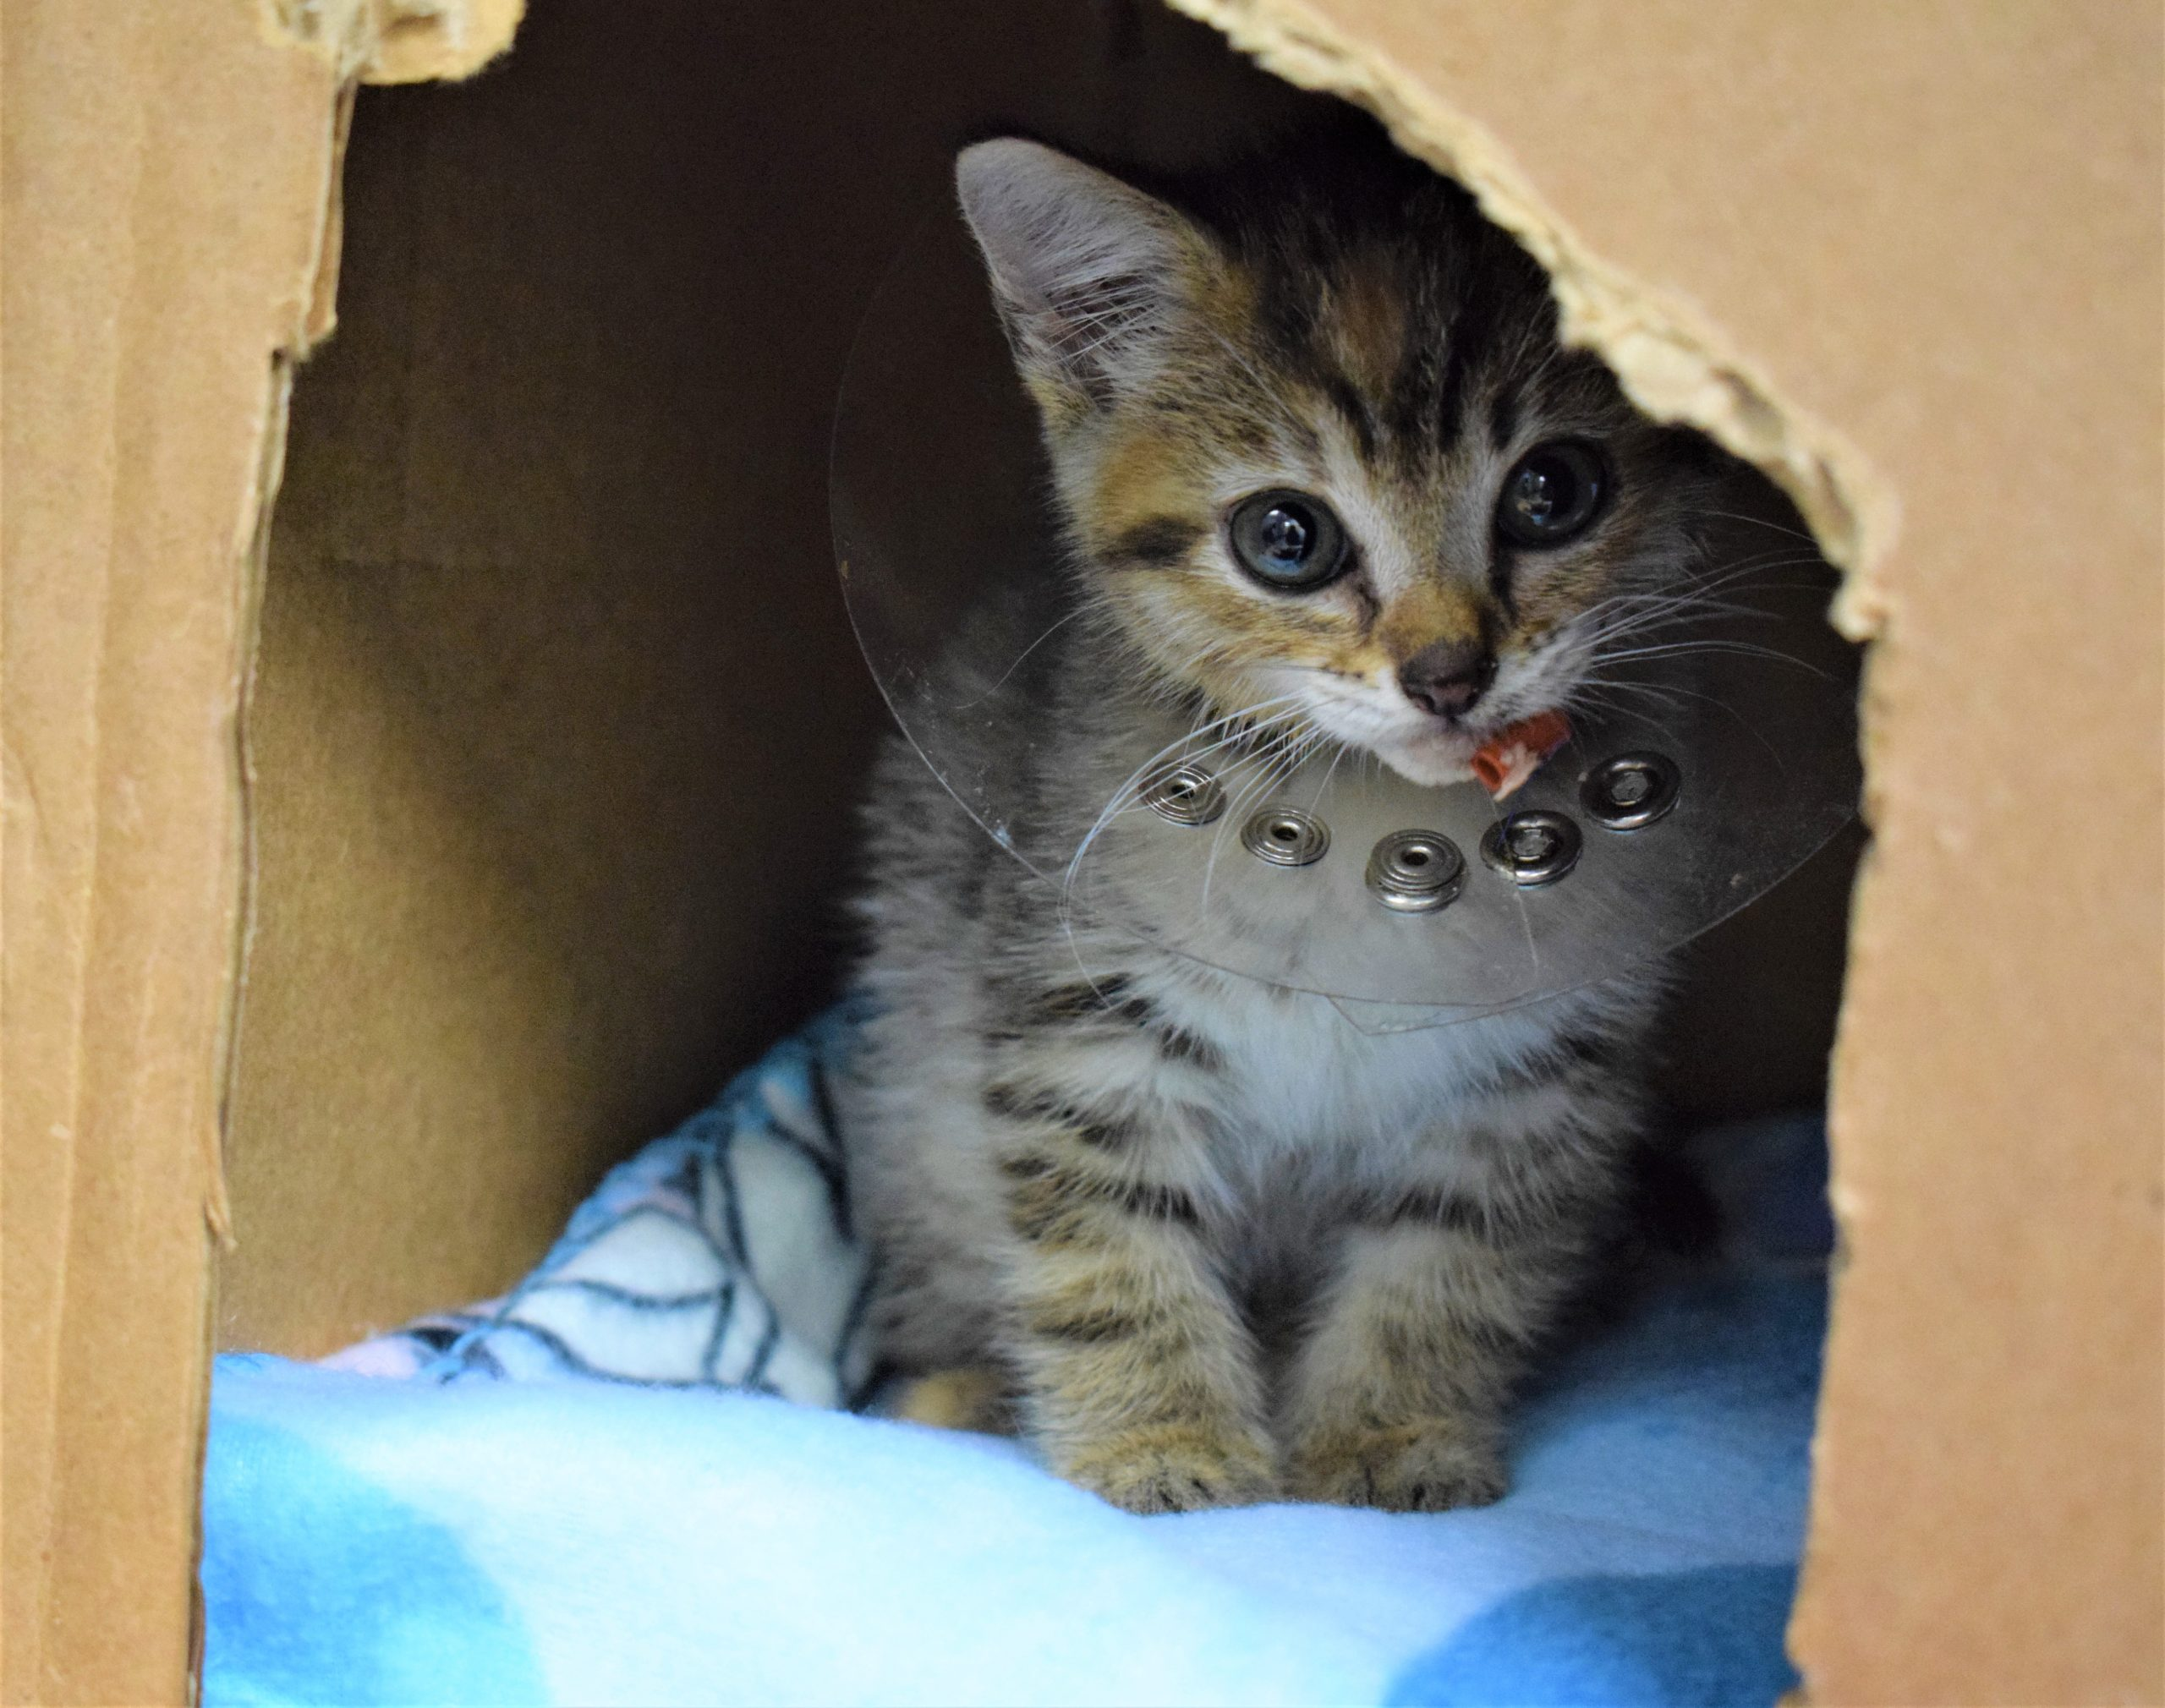 Kitten Named Chevy Rescued From Inside Car Engine